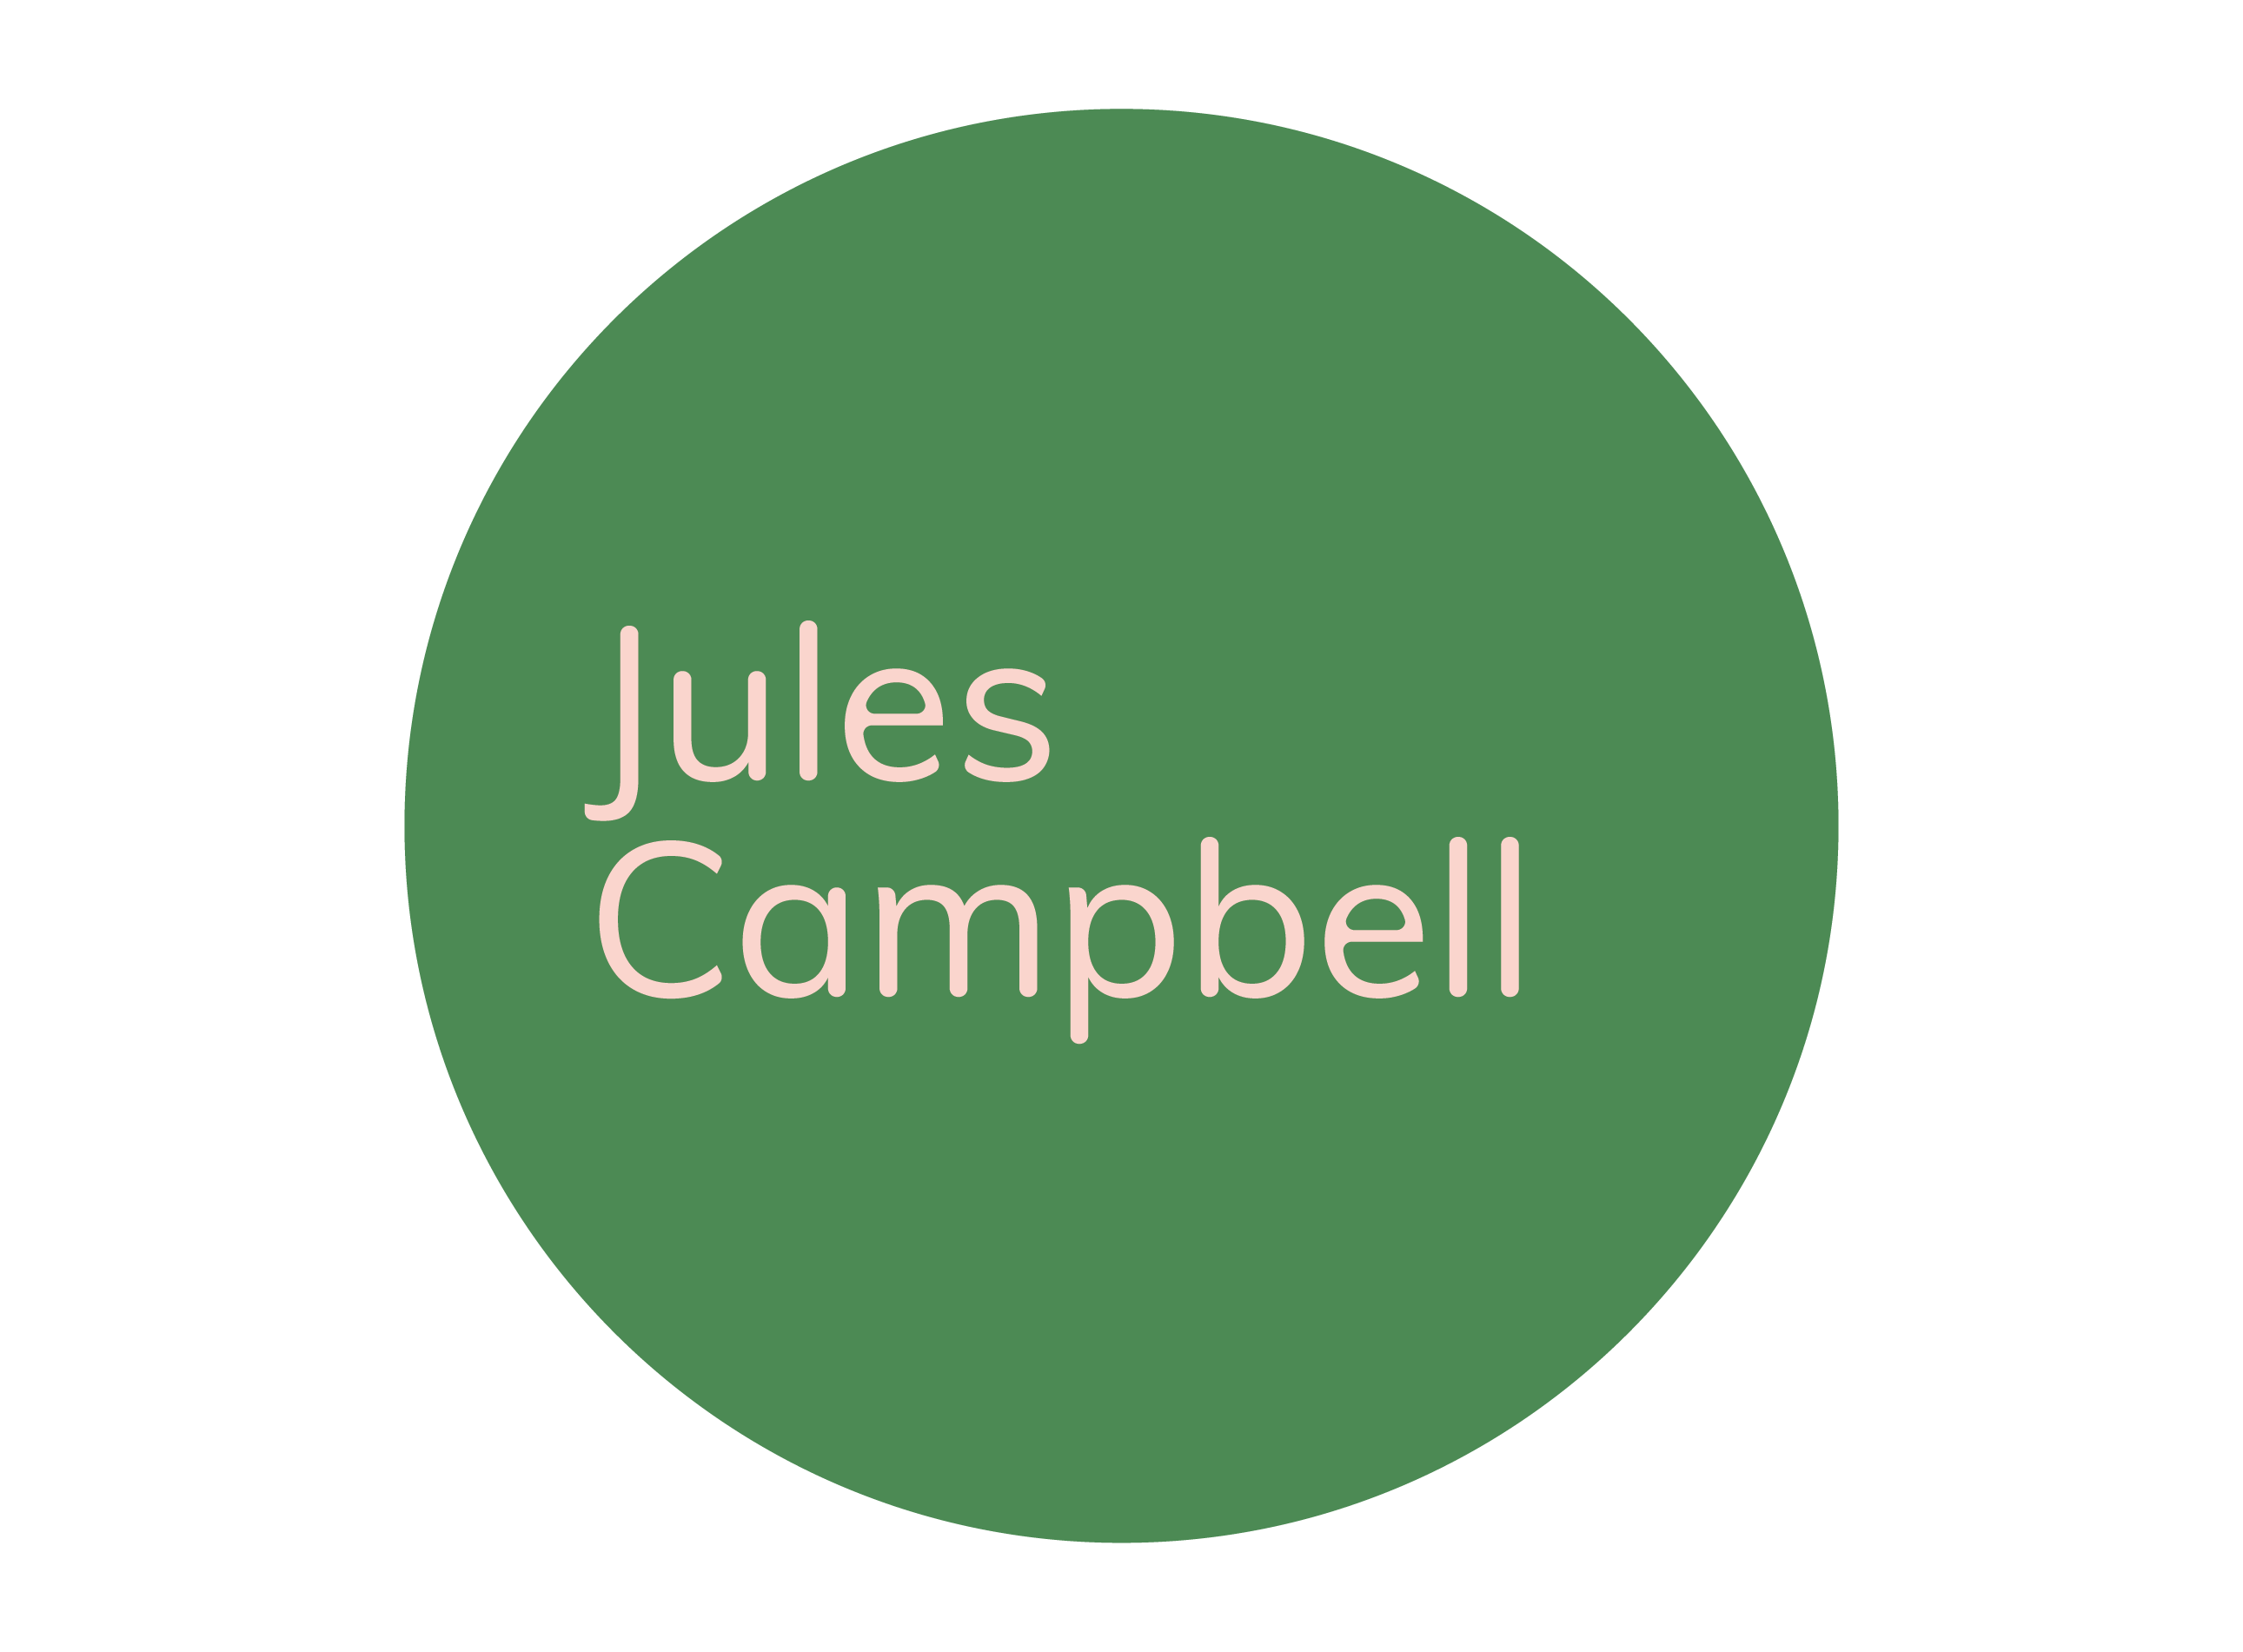 Jules Campbell